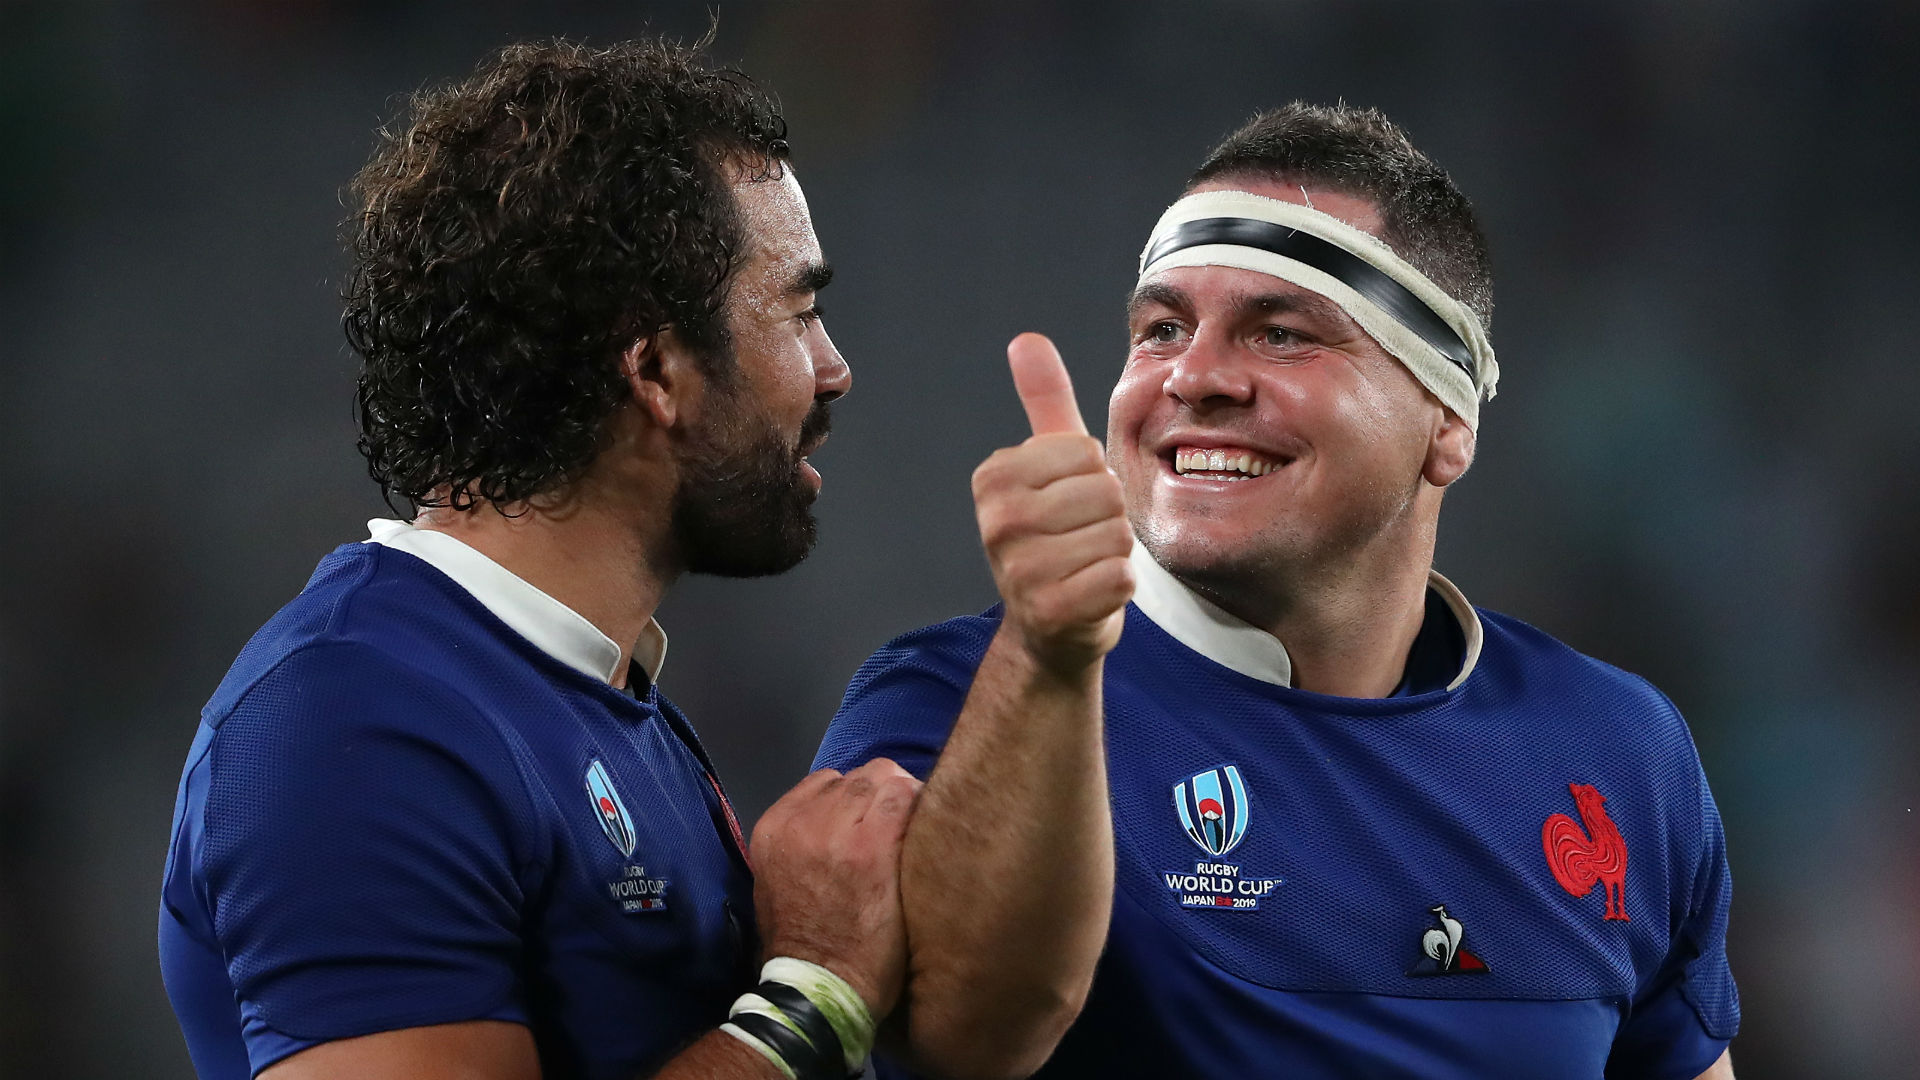 Having been left out of France's last two teams amid reports of a bust-up with his coach, Guilhem Guirado will lead Les Bleus against Wales.